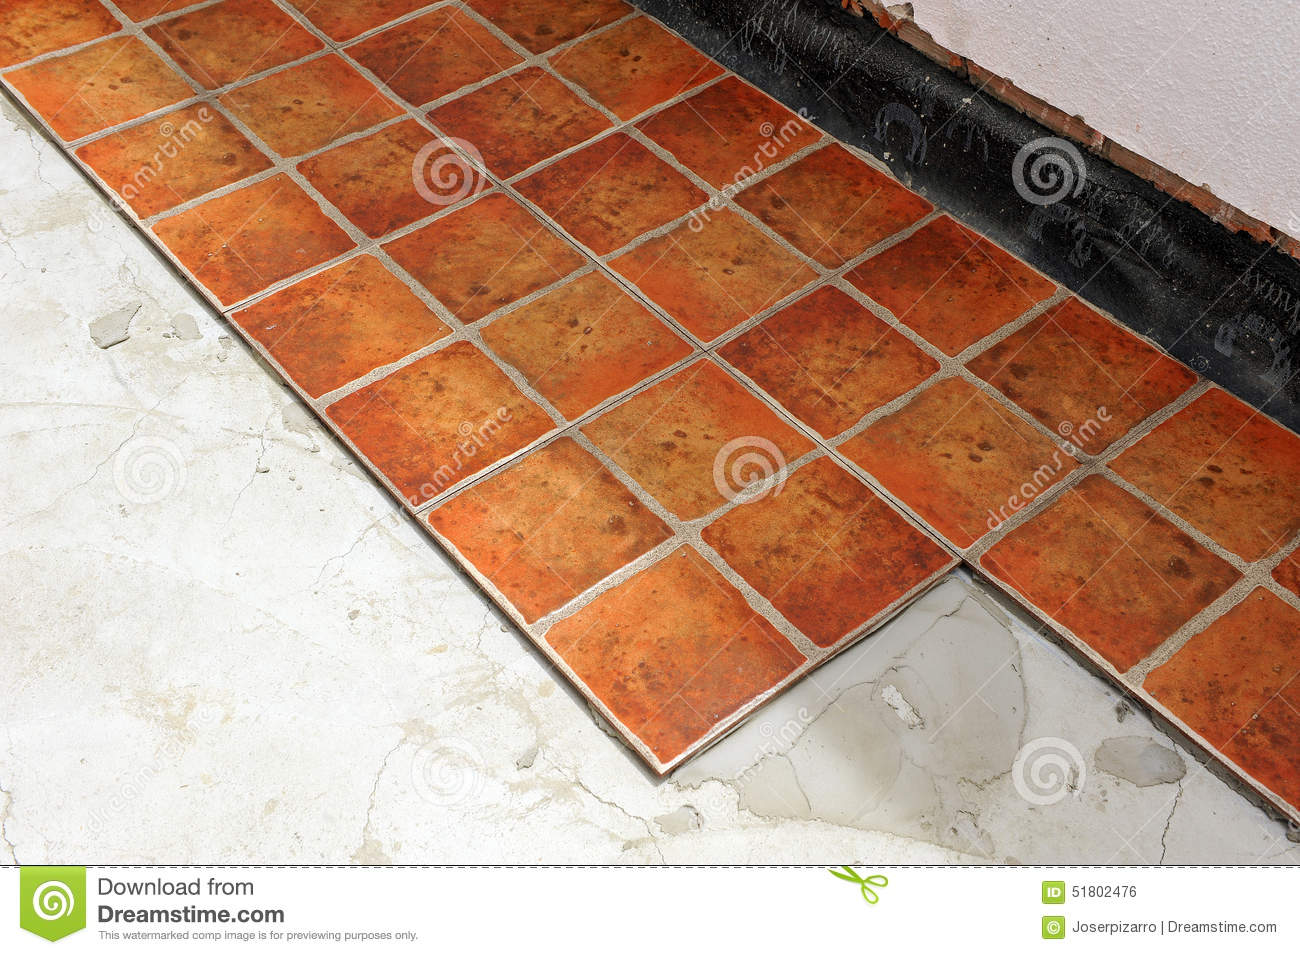 Paving the floor of the courtyard of a house with ceramic tile stock paving the floor of the courtyard of a house with ceramic tile installation hitting dailygadgetfo Images